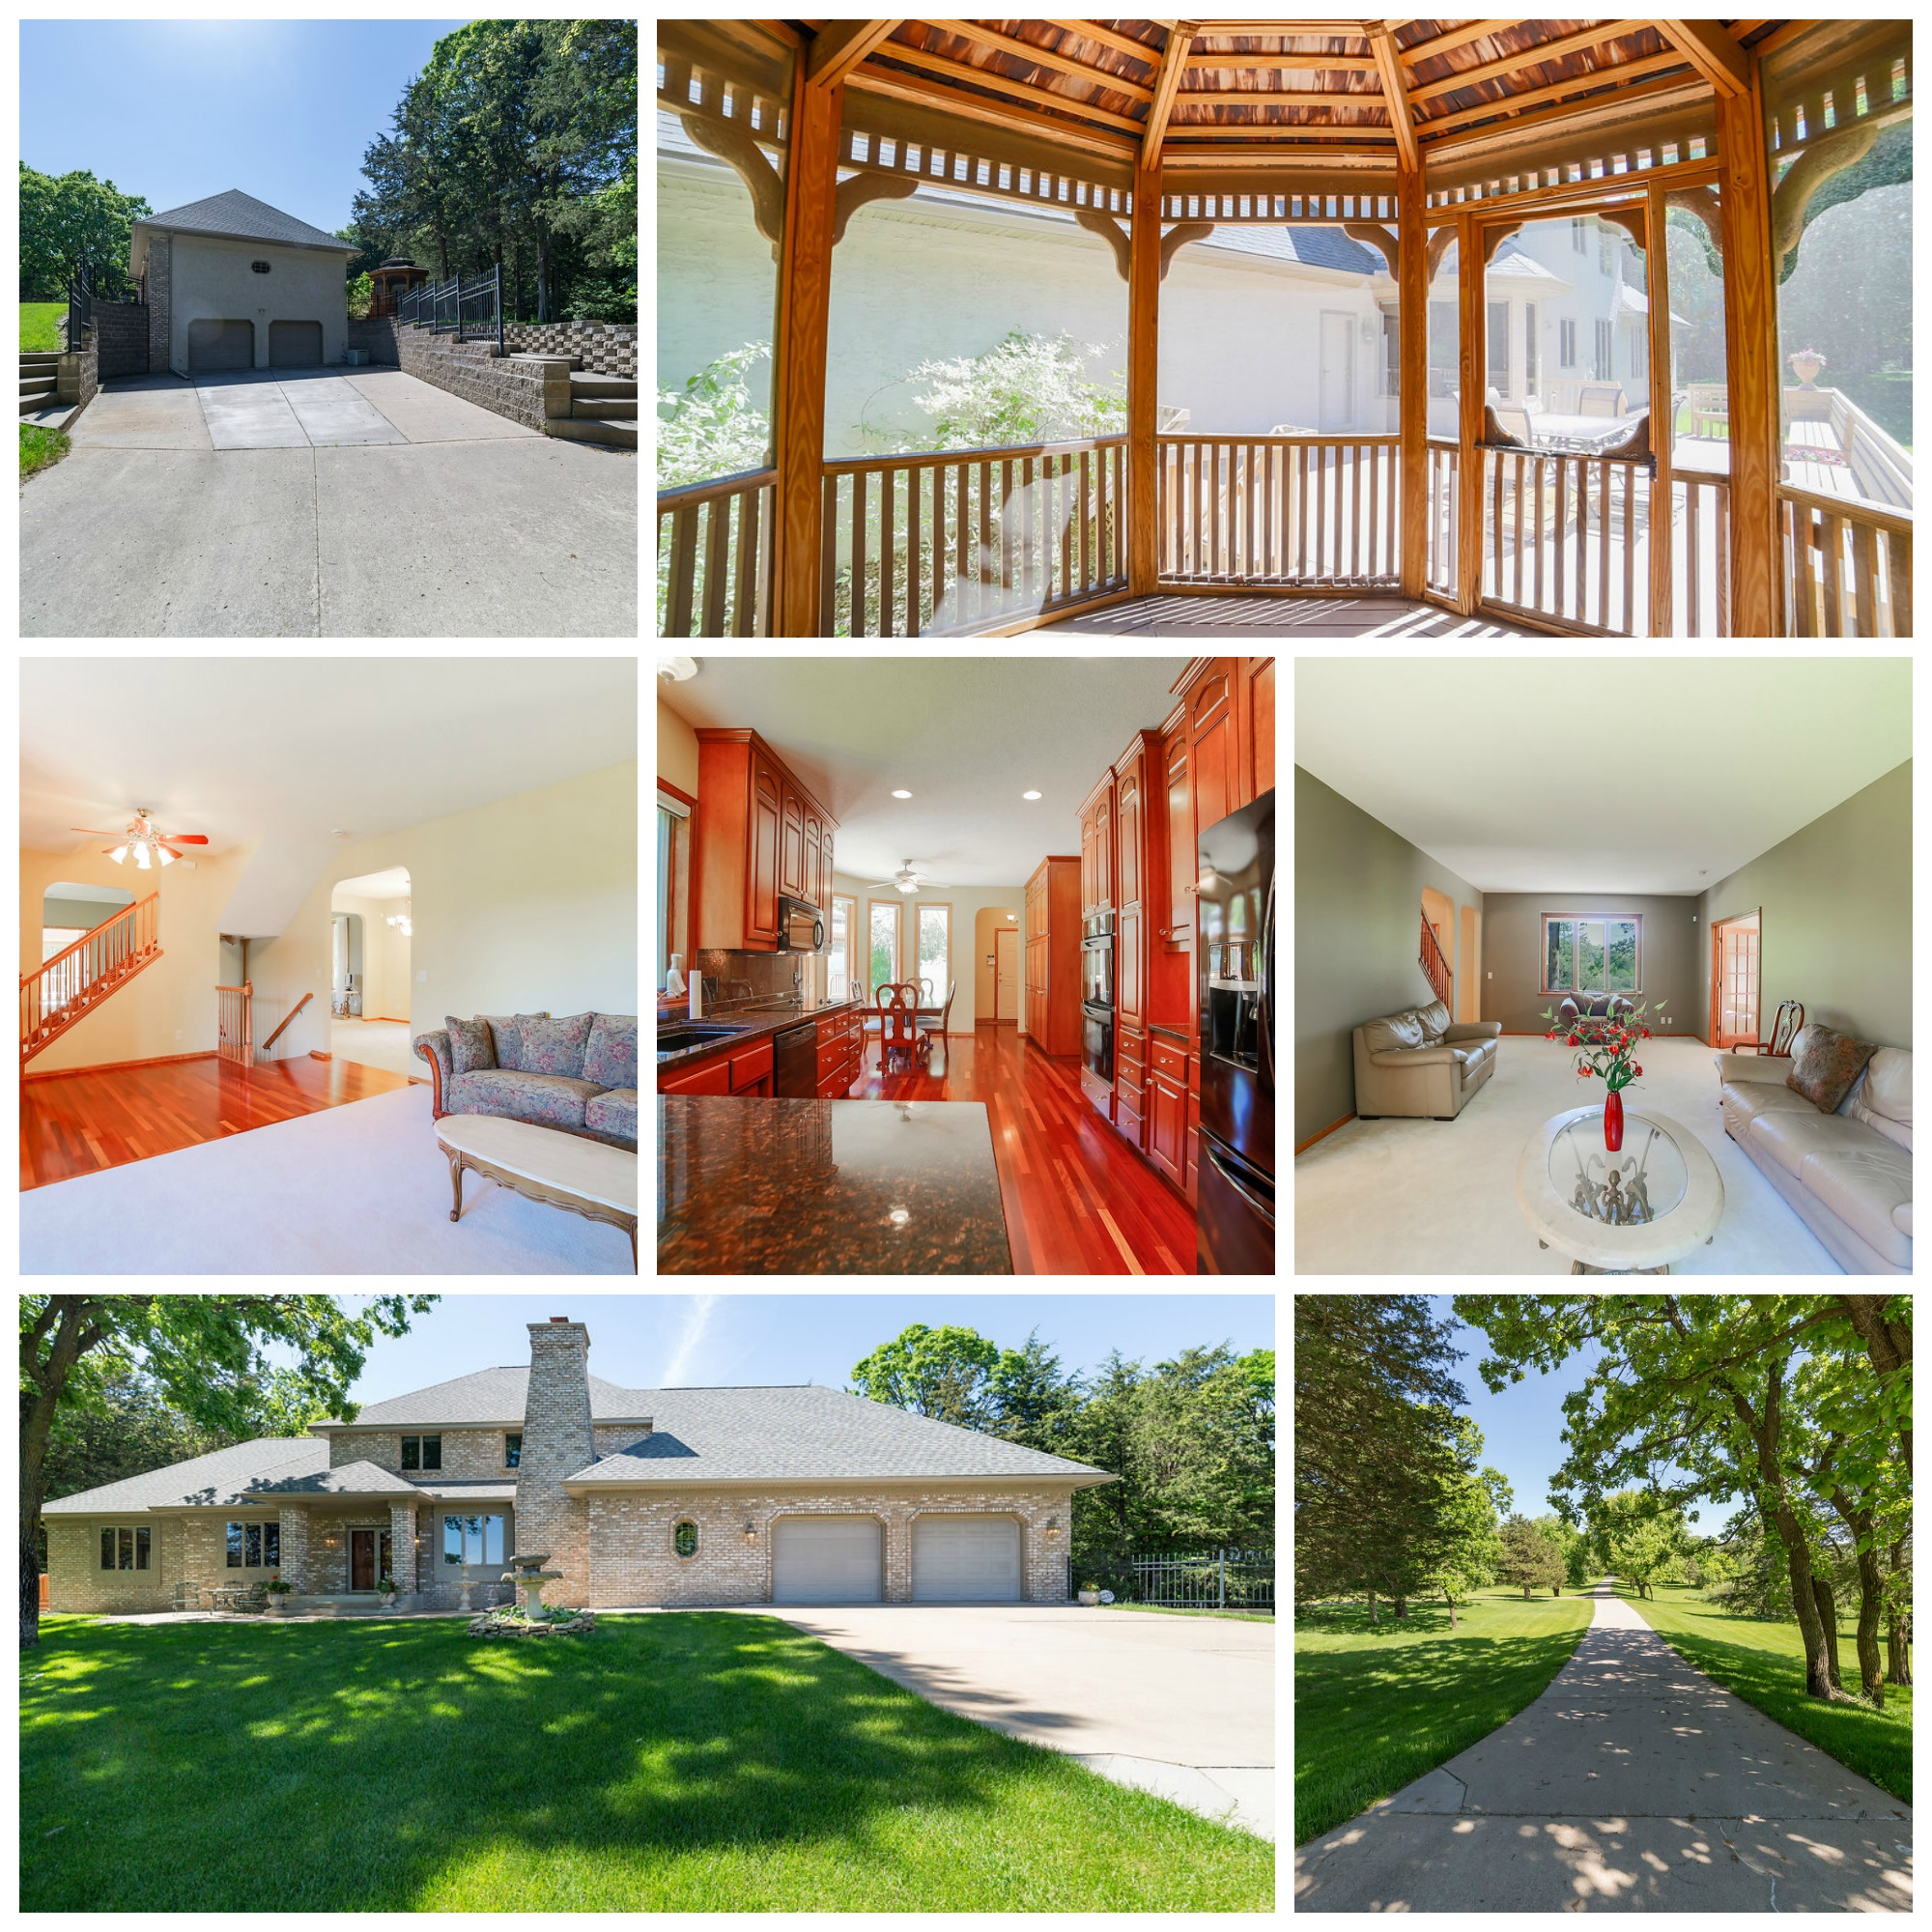 Home for sale on acreage